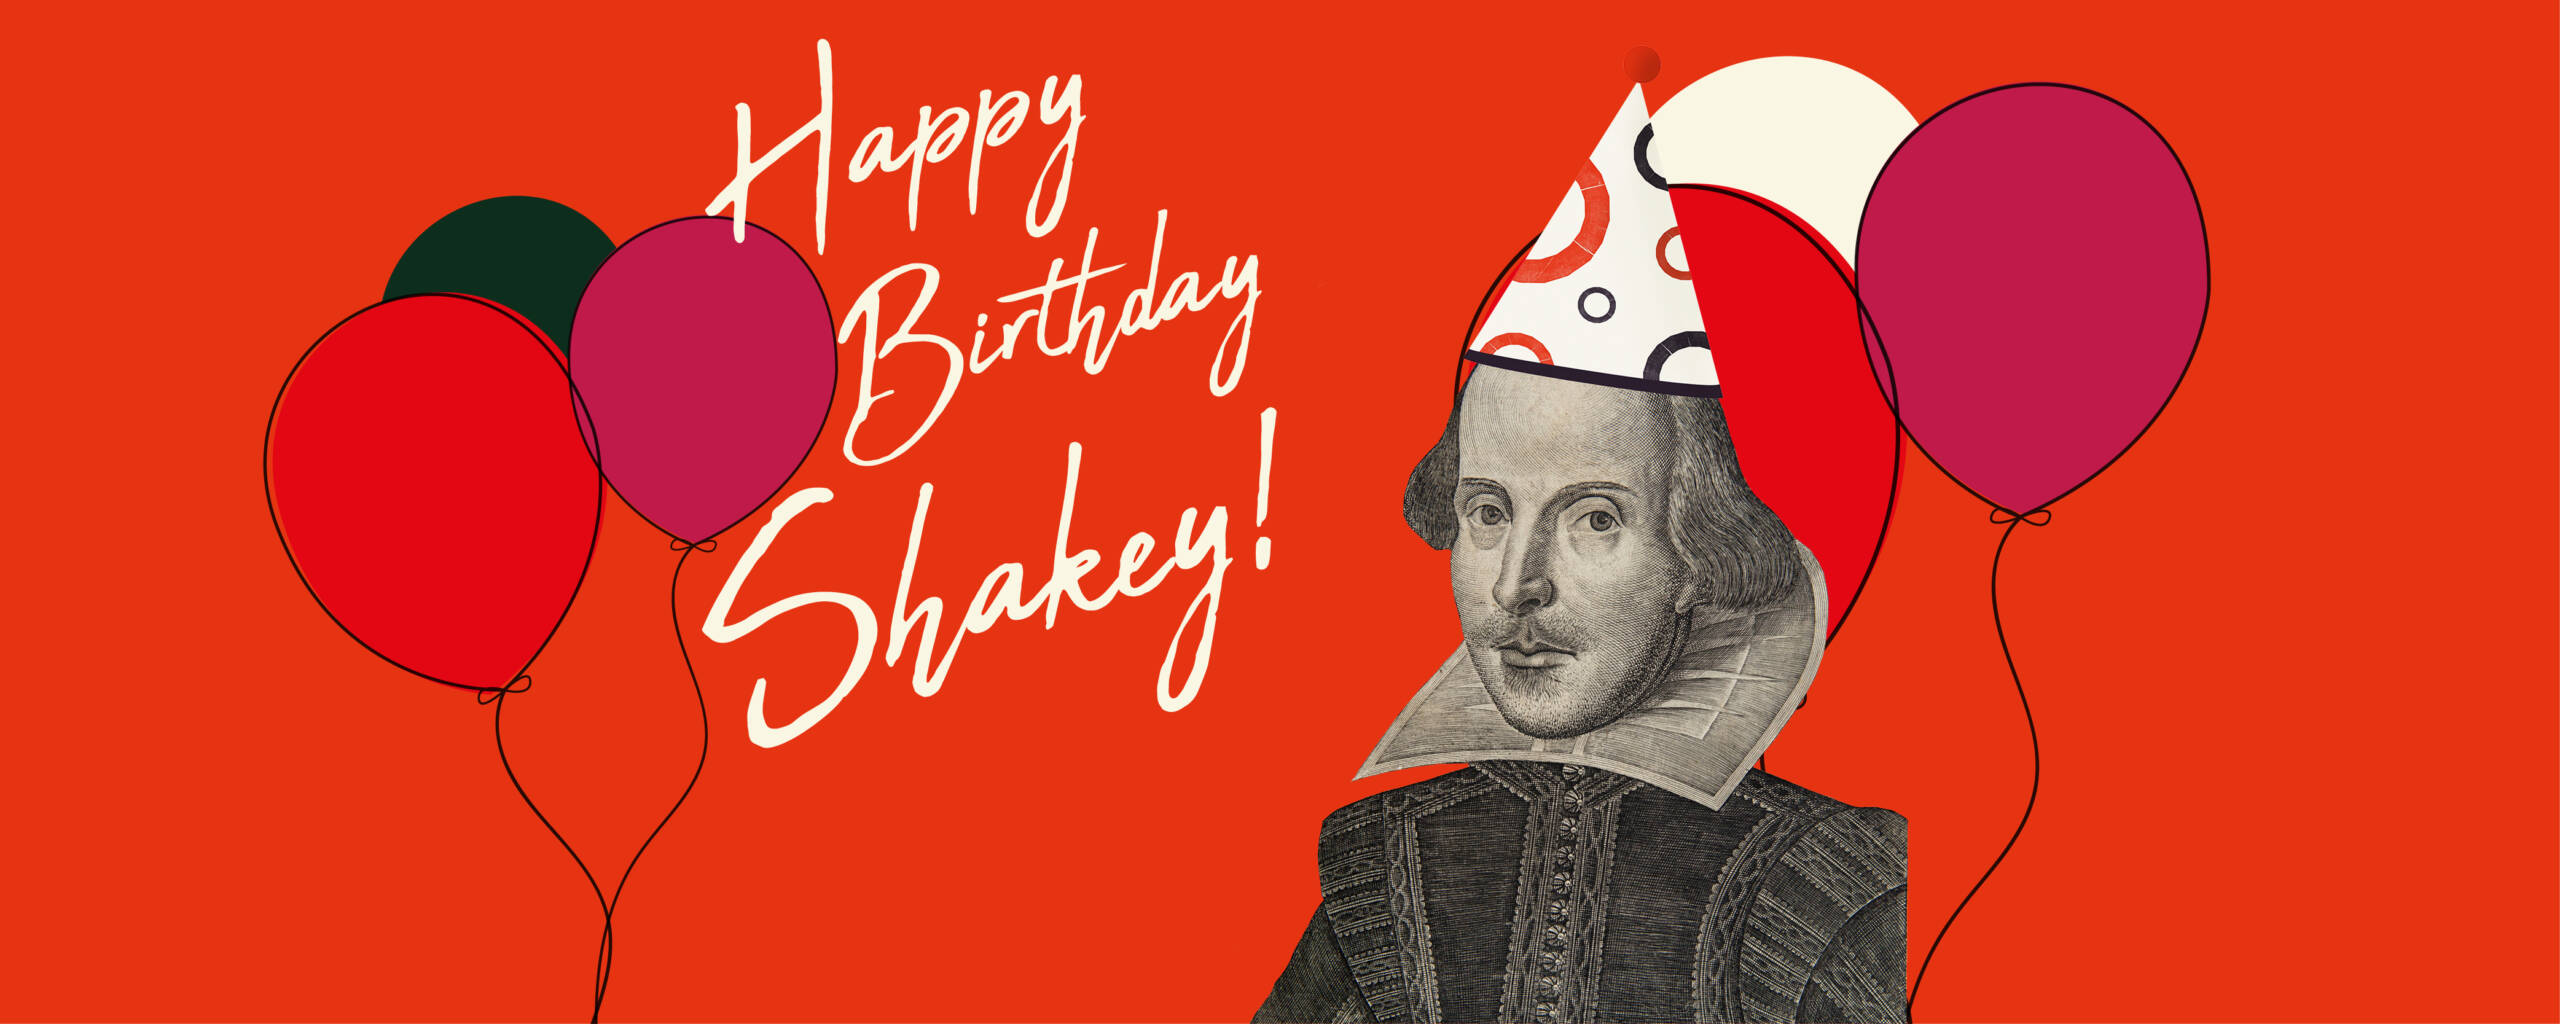 A bright red background with a cut out of Shakespeare, wearing a party hat, surrounded by balloons. Text reads: Happy Birthday Shakey!